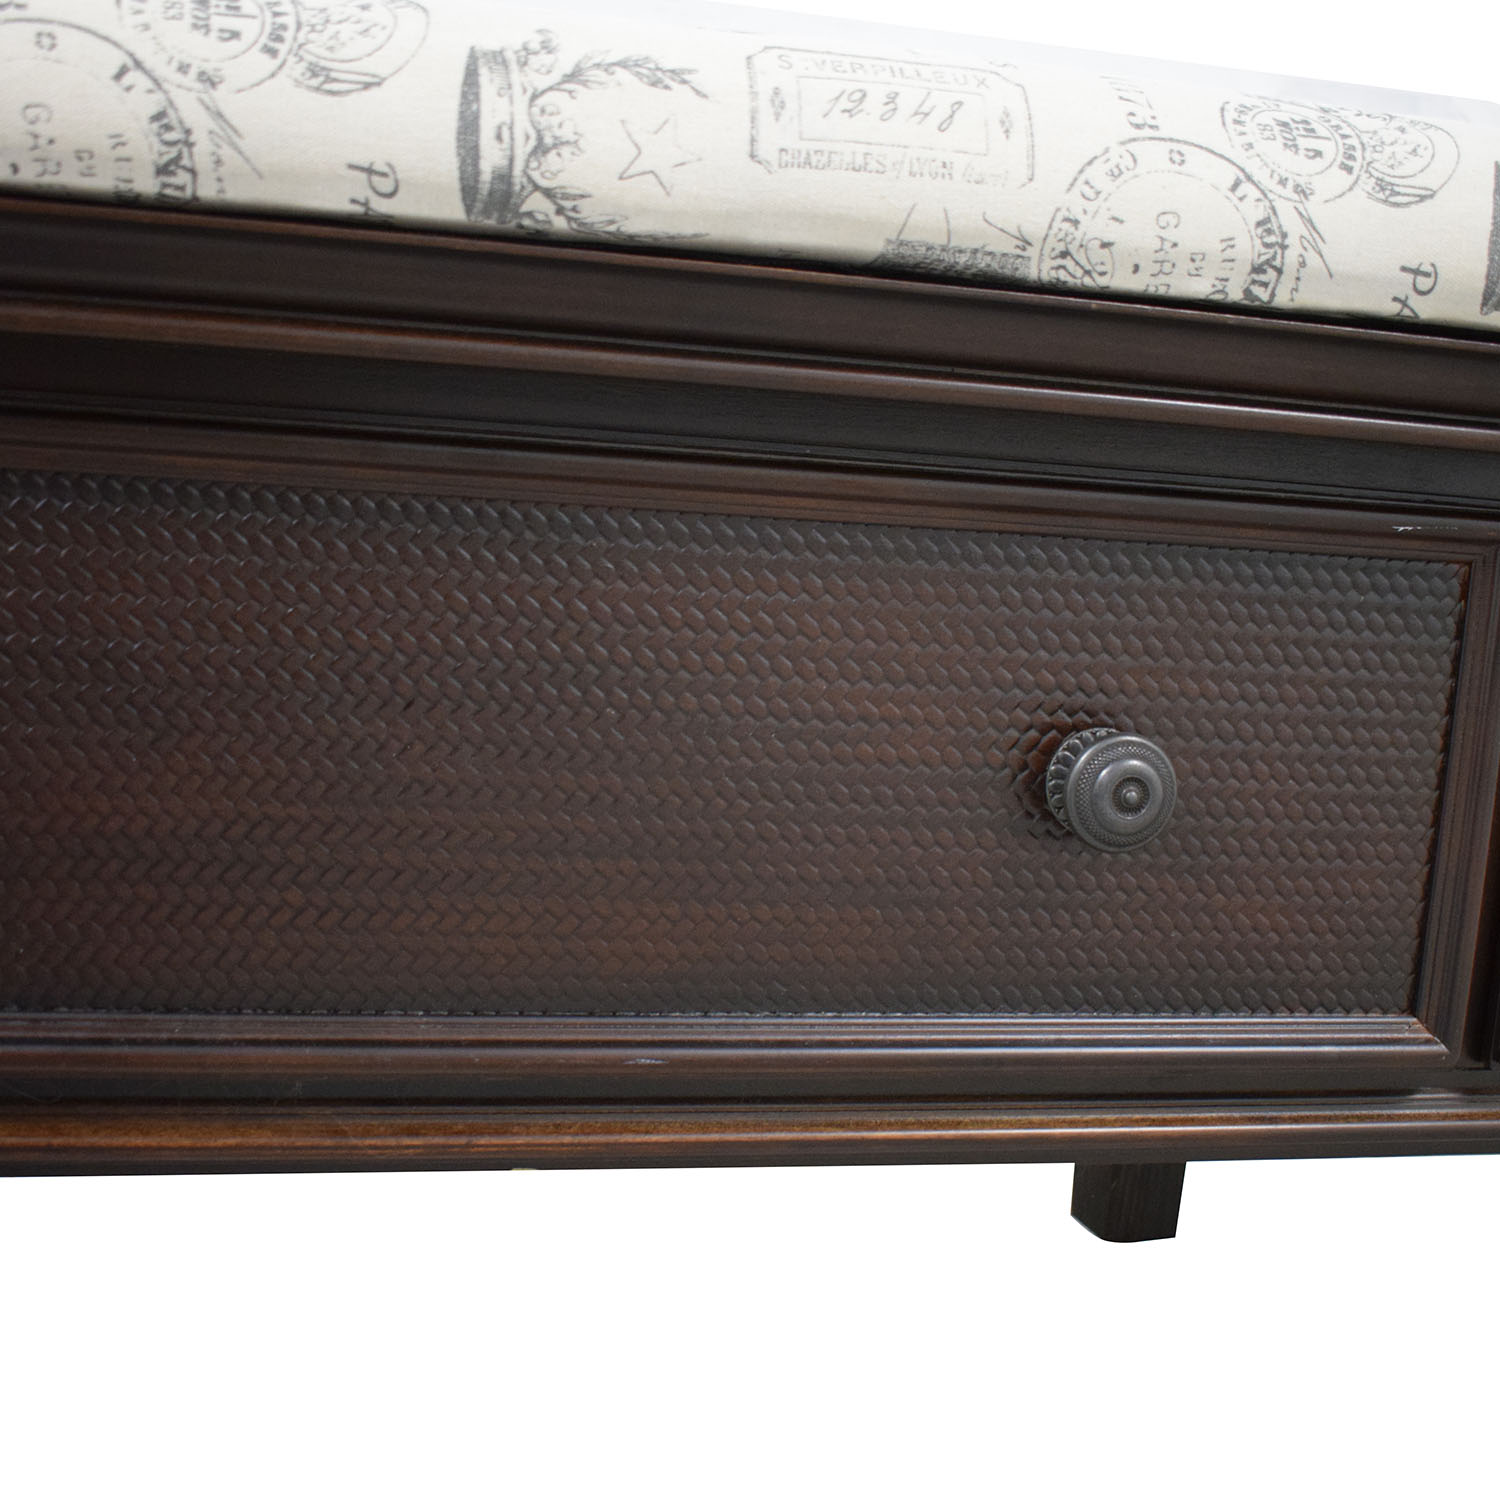 Ashley Furniture Key Town Bedroom Storage Bench / Benches